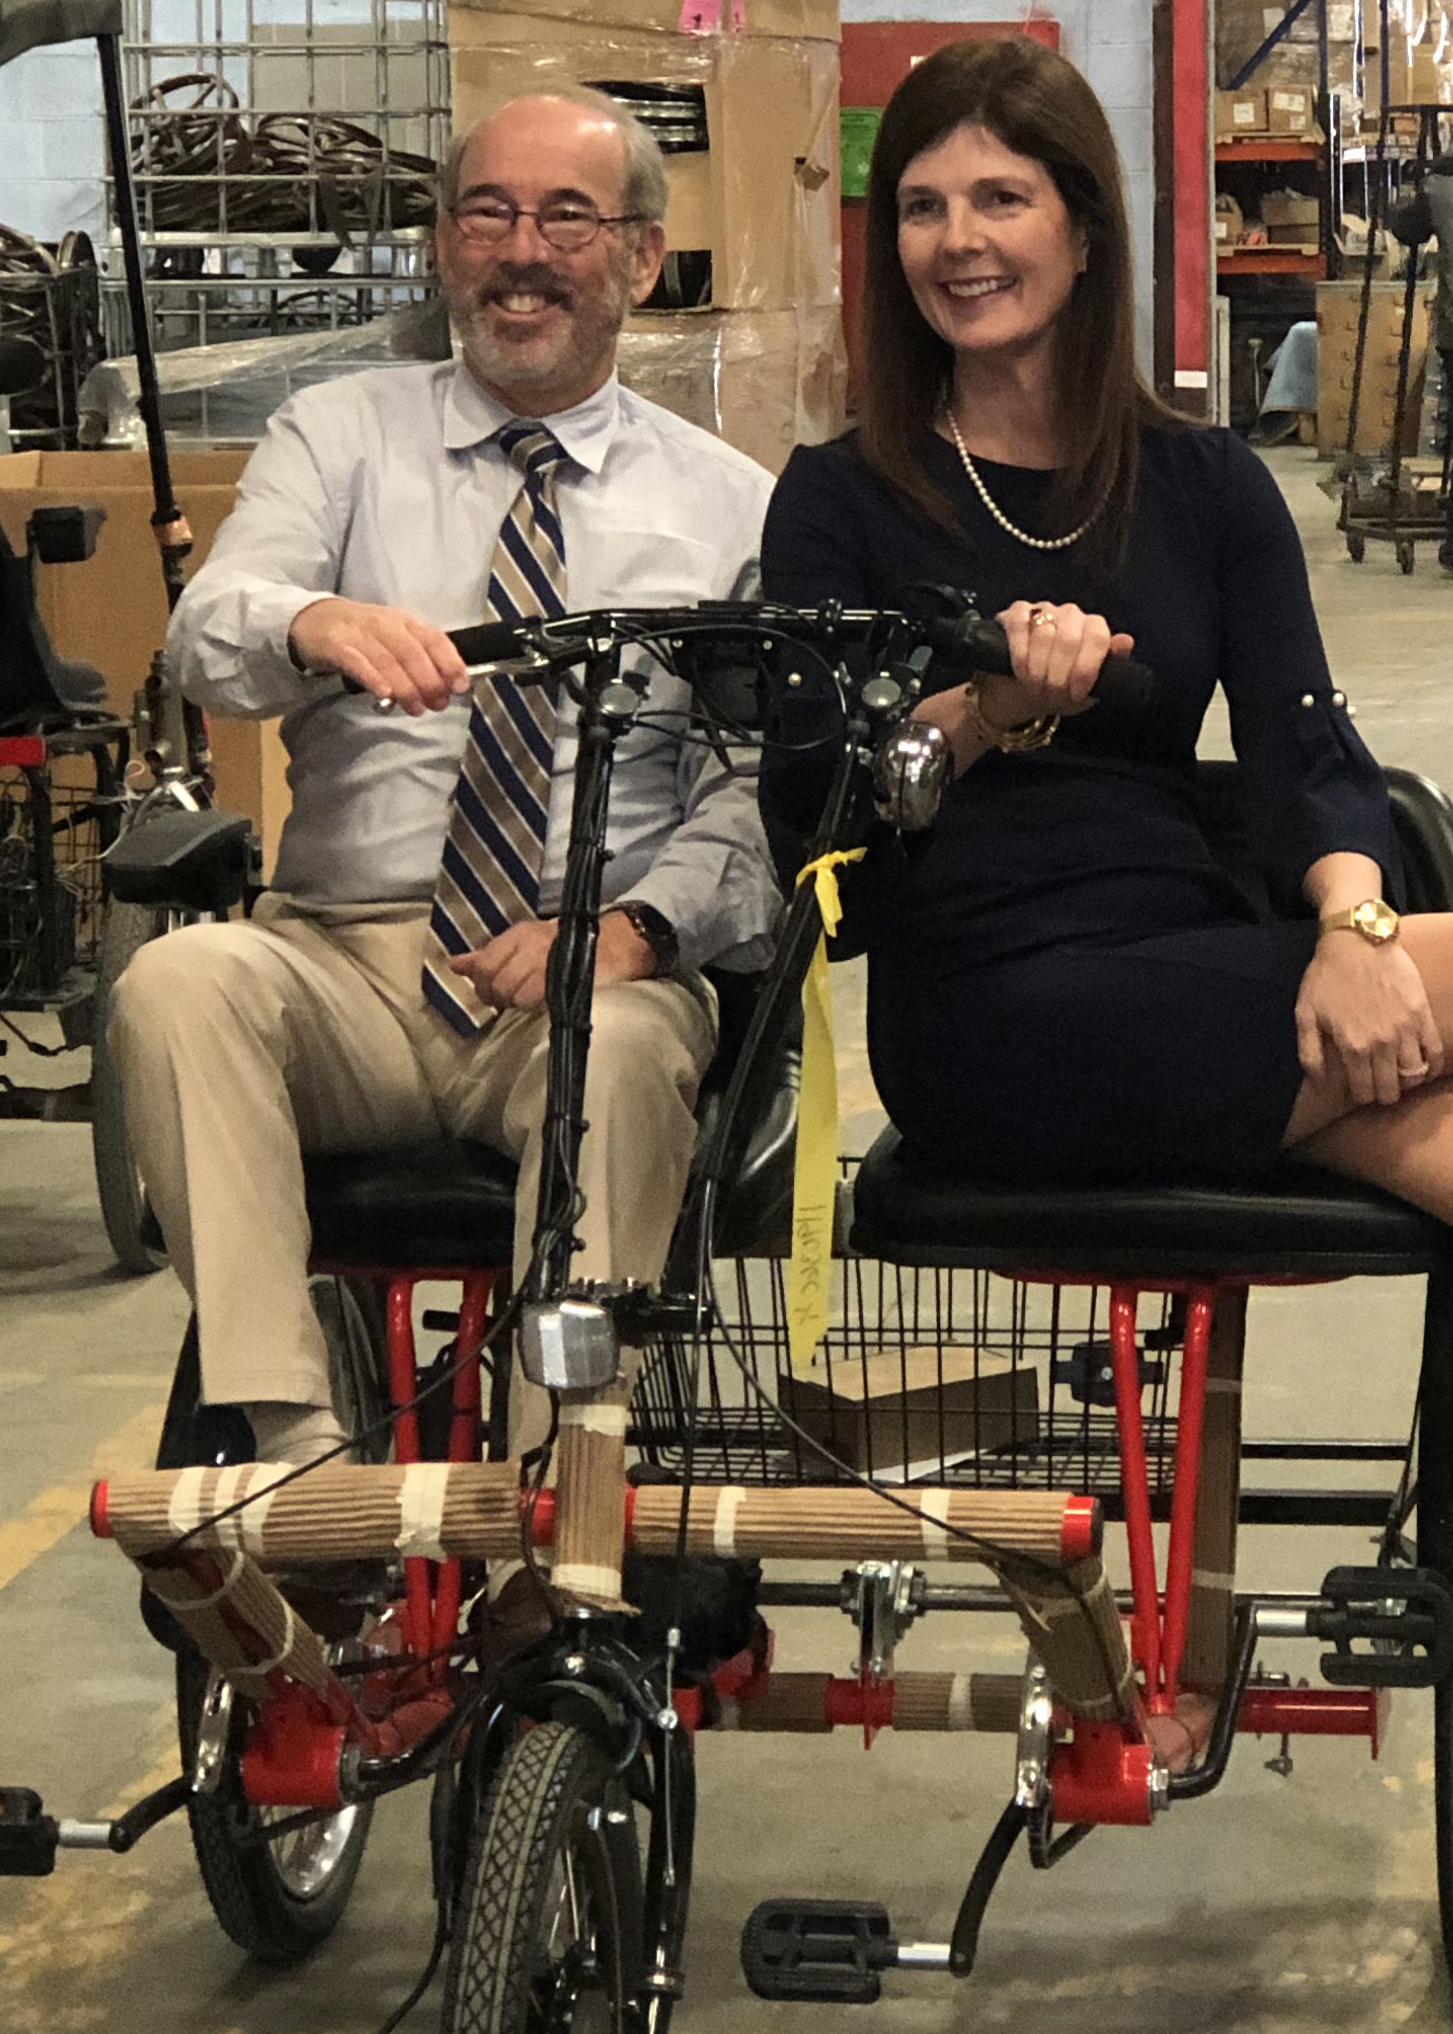 Wayne Sosin, President of Worksman Cycles, and Lt. Gov. Pamela Evette try out one of the company's tricycles.